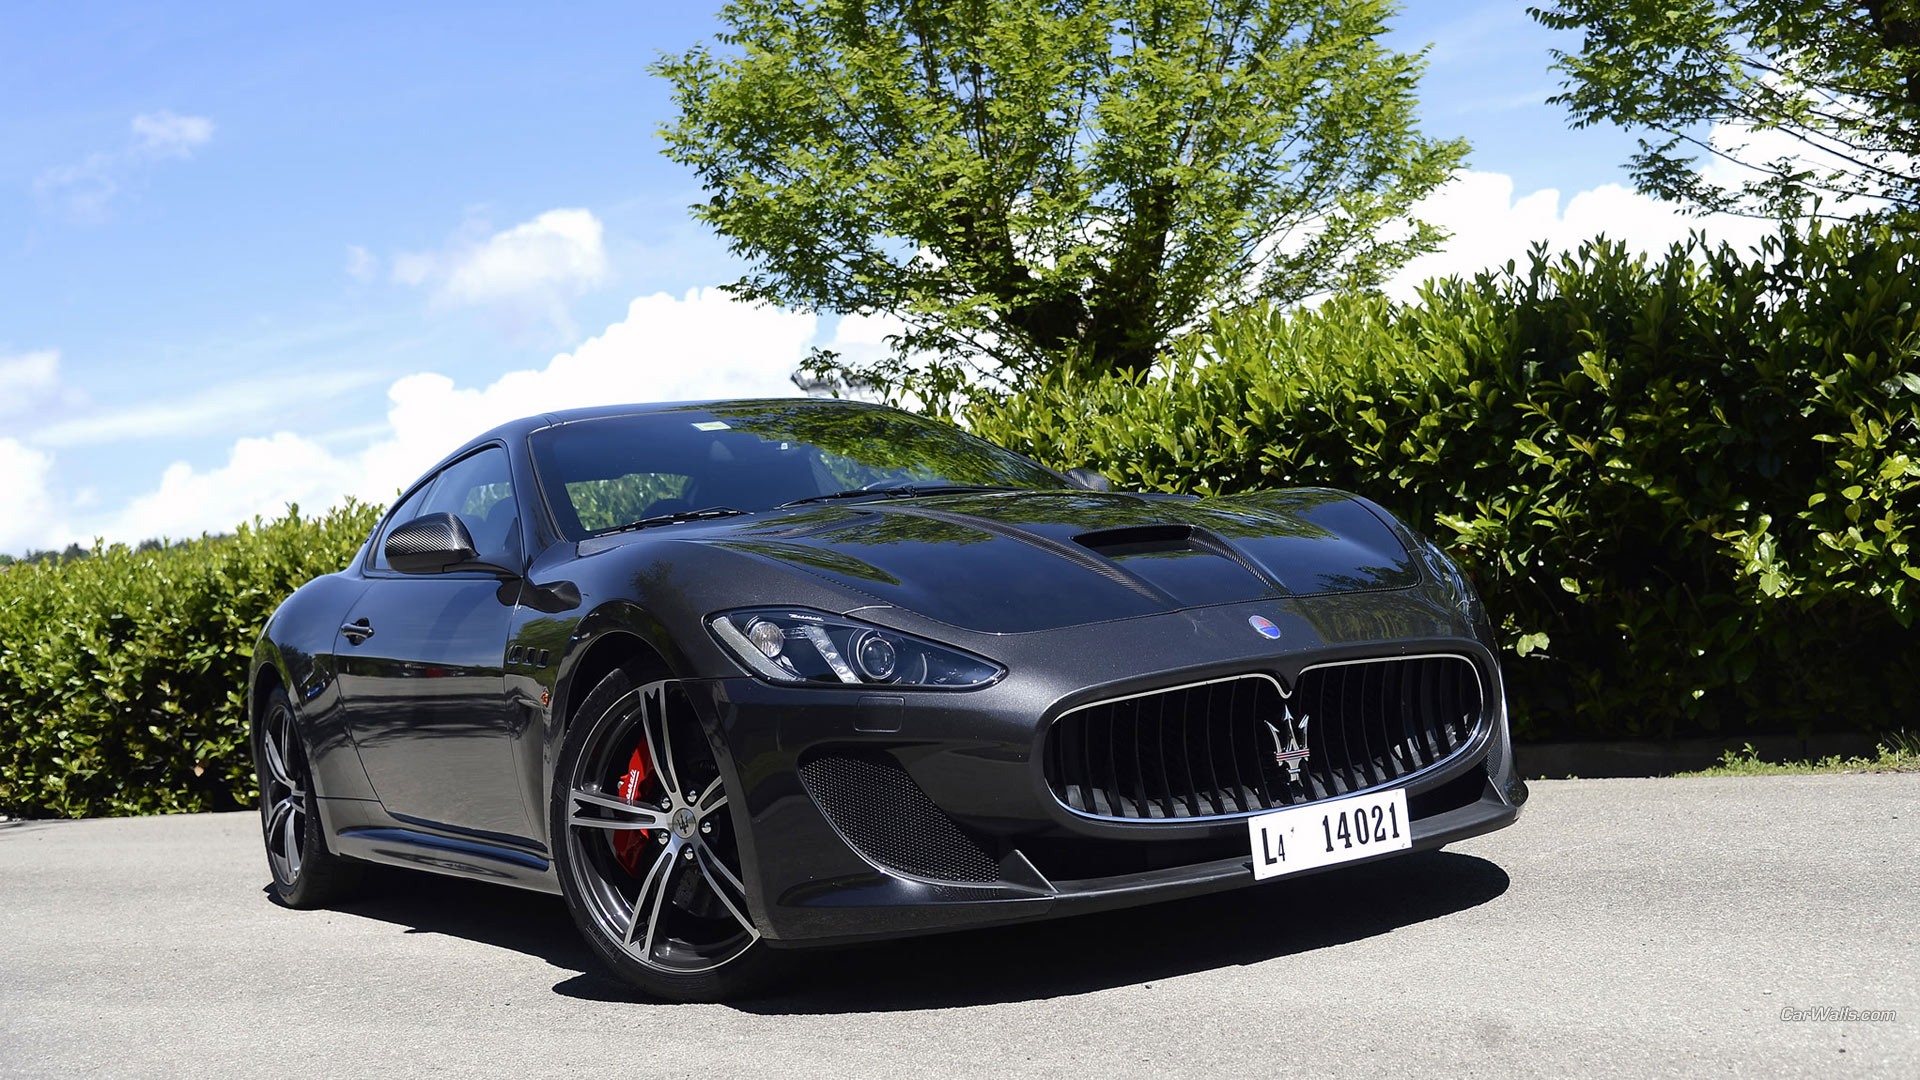 Maserati 2014 Wallpaper Hd